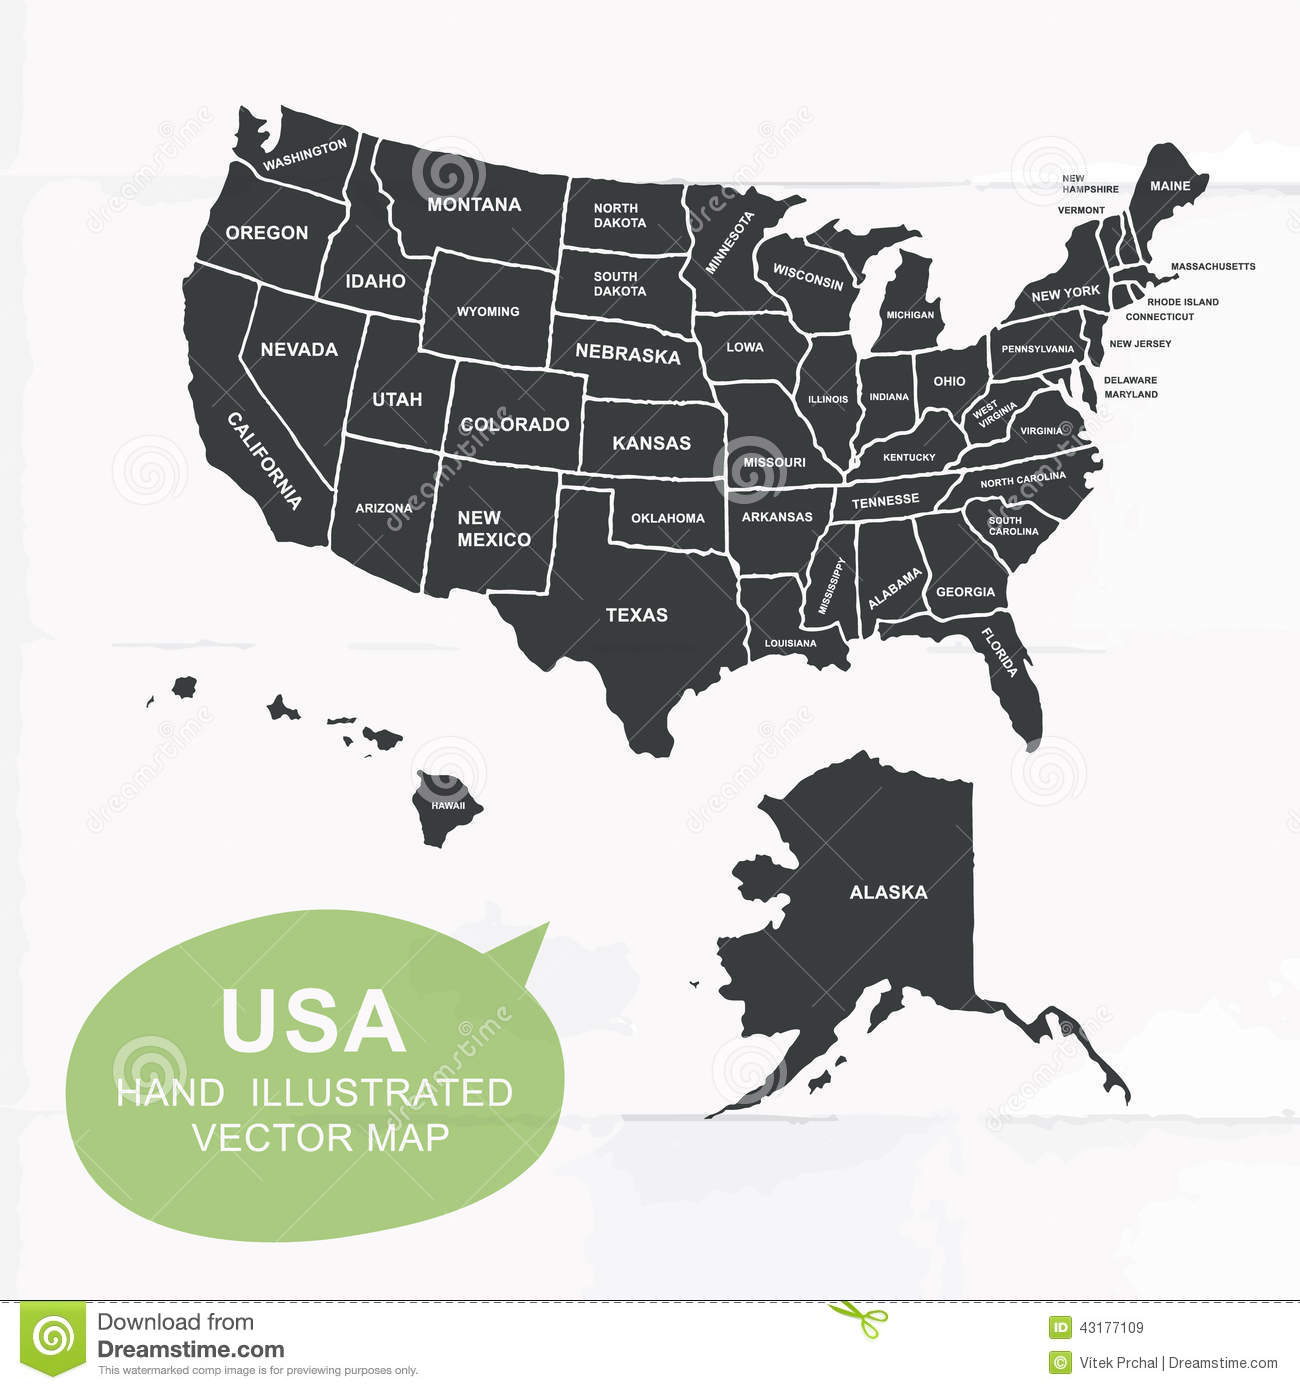 Hand Illustrated Vector Map Of United States Stock Vector Image - Map of united states download